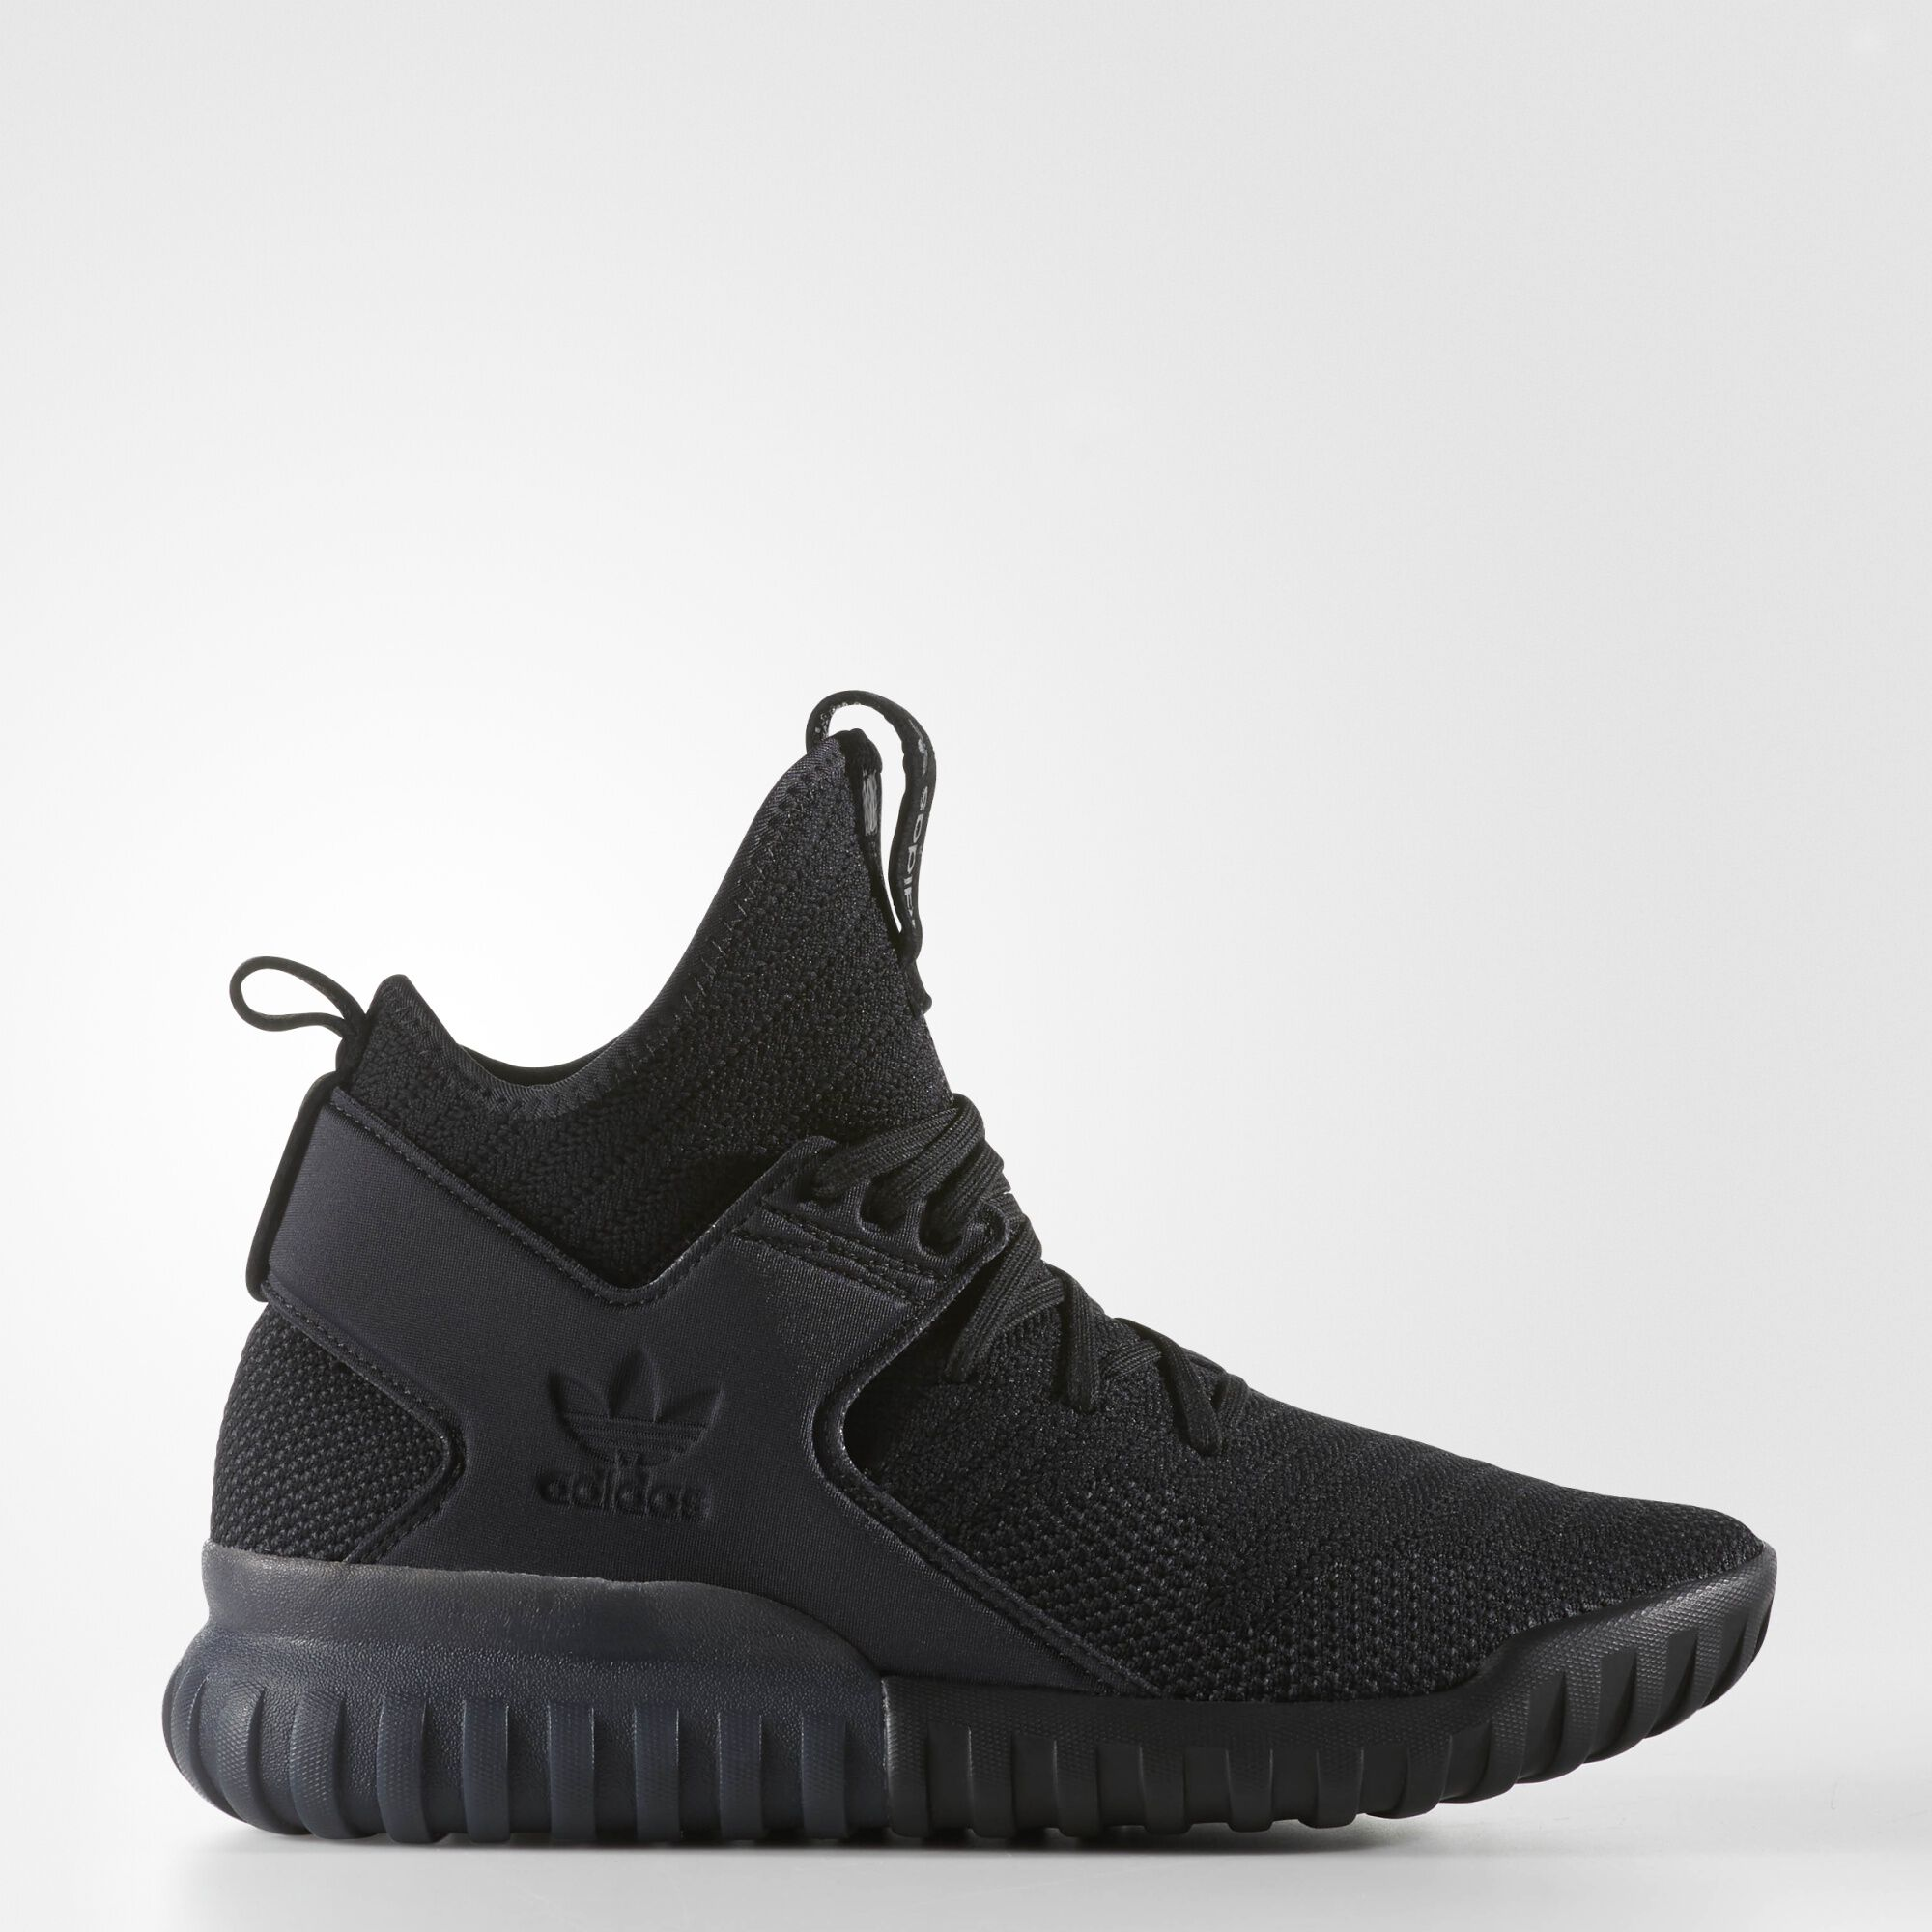 Adidas Tubular Doom 'Yin Yang' Pack / Coming Soon